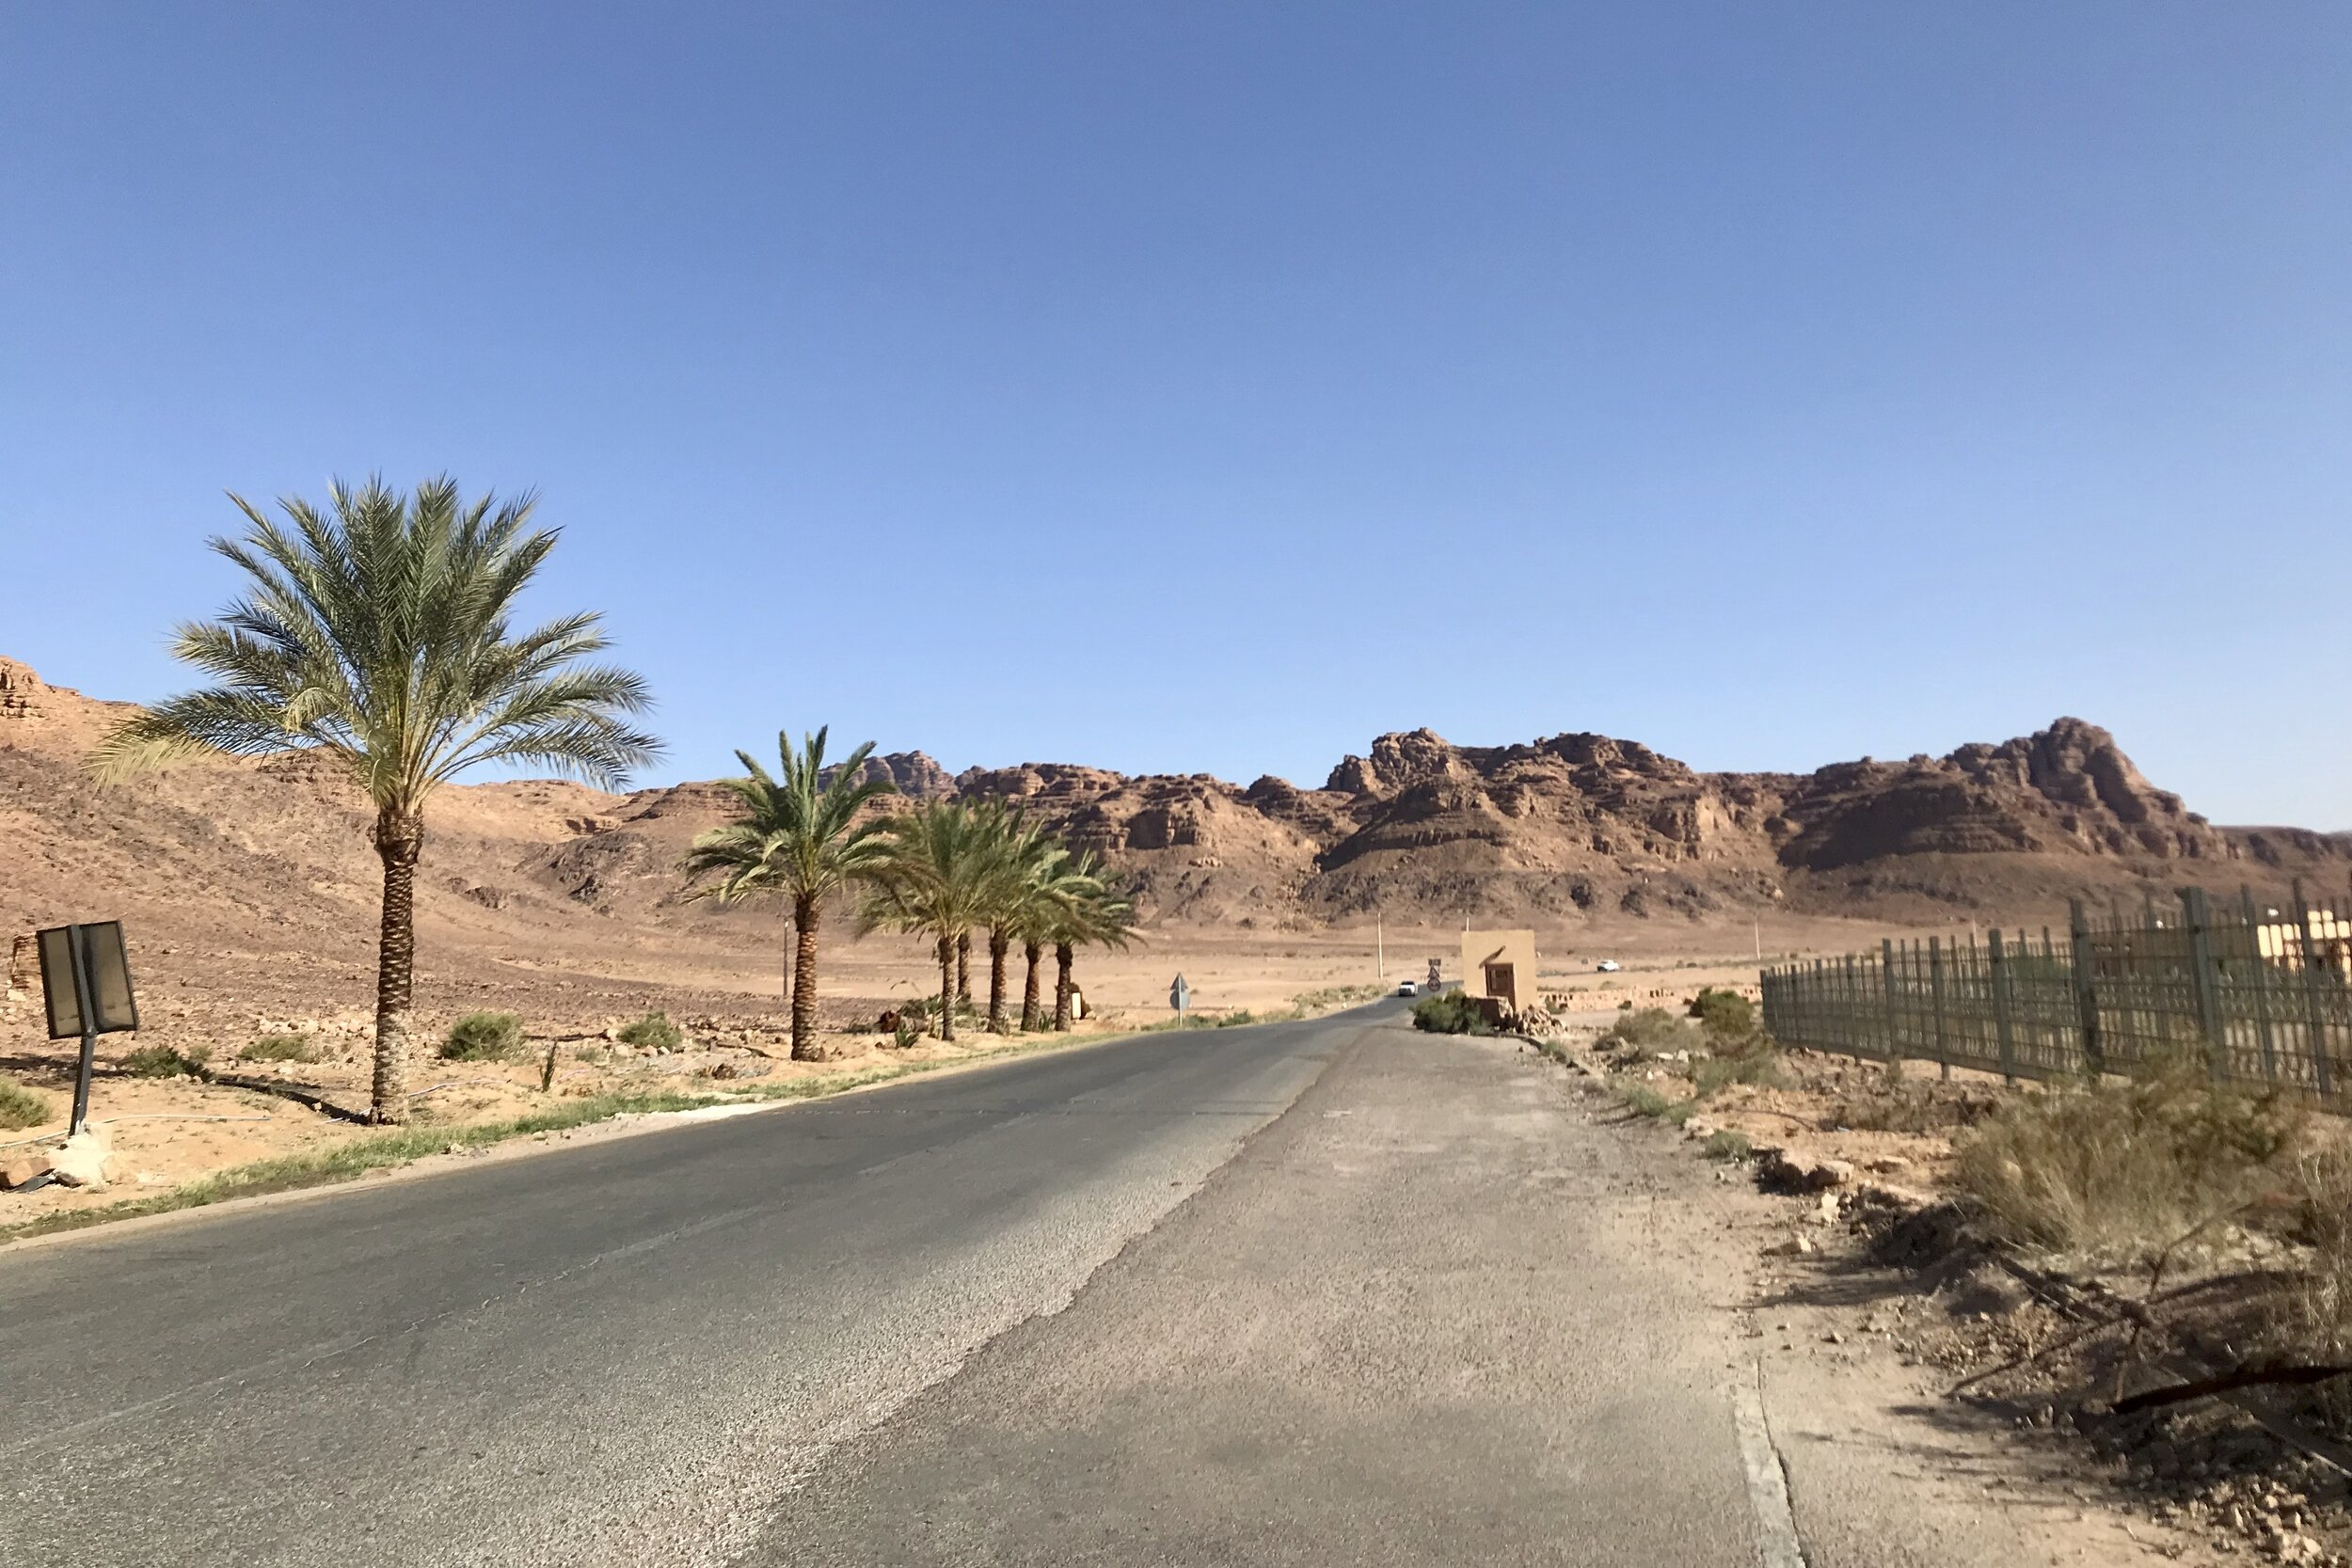 Driving to Wadi Rum